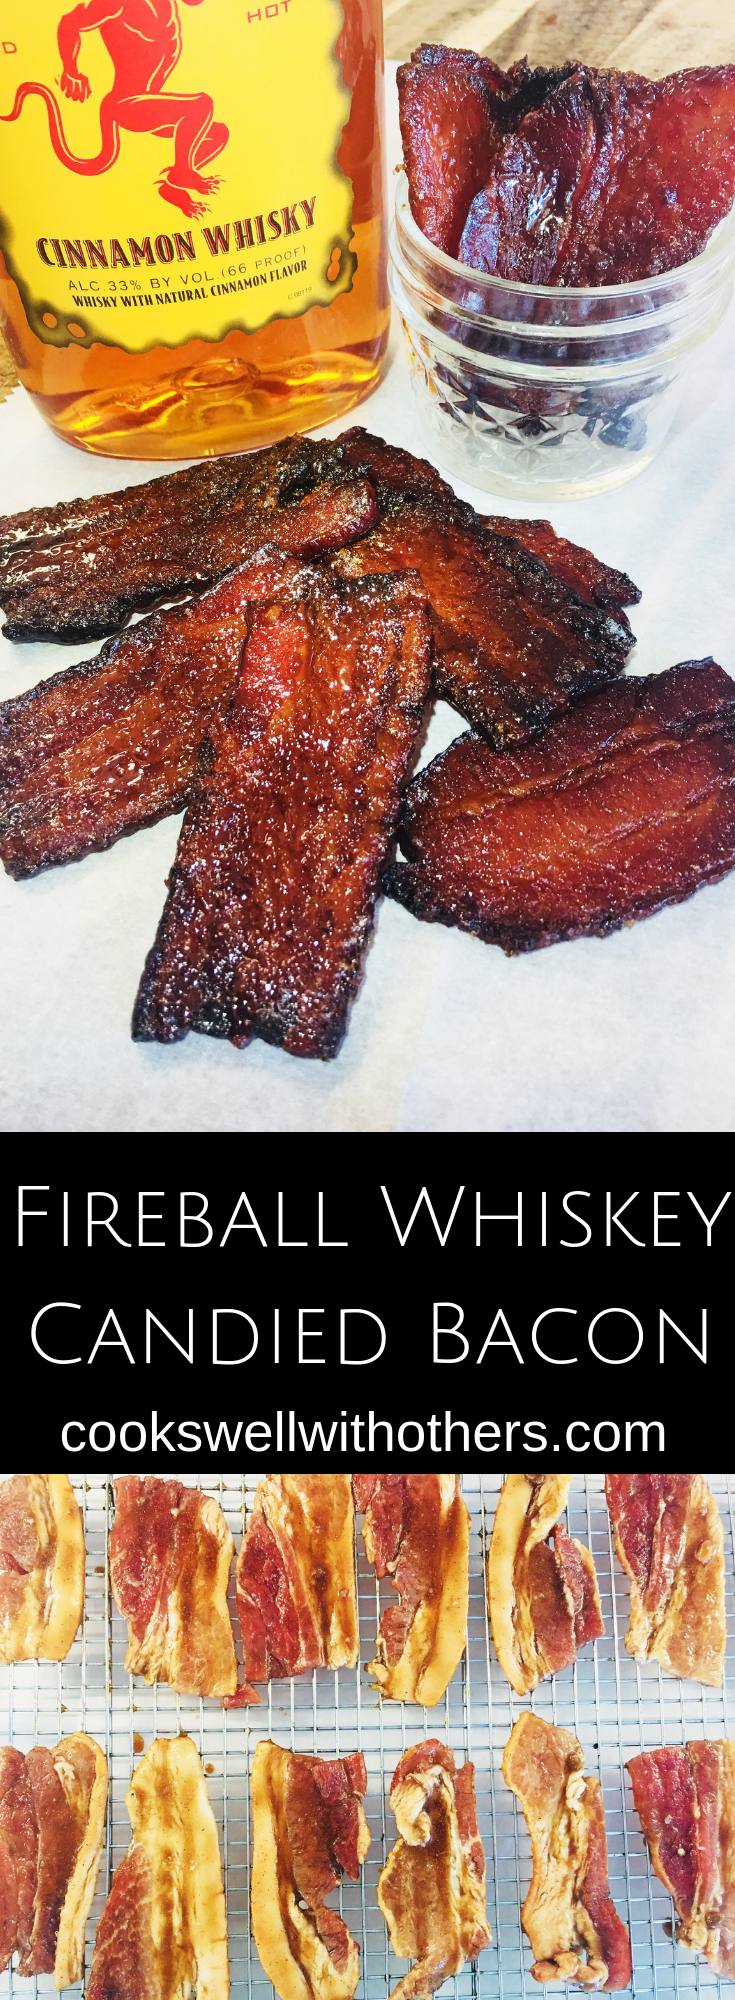 Fireball Whiskey Candied Bacon